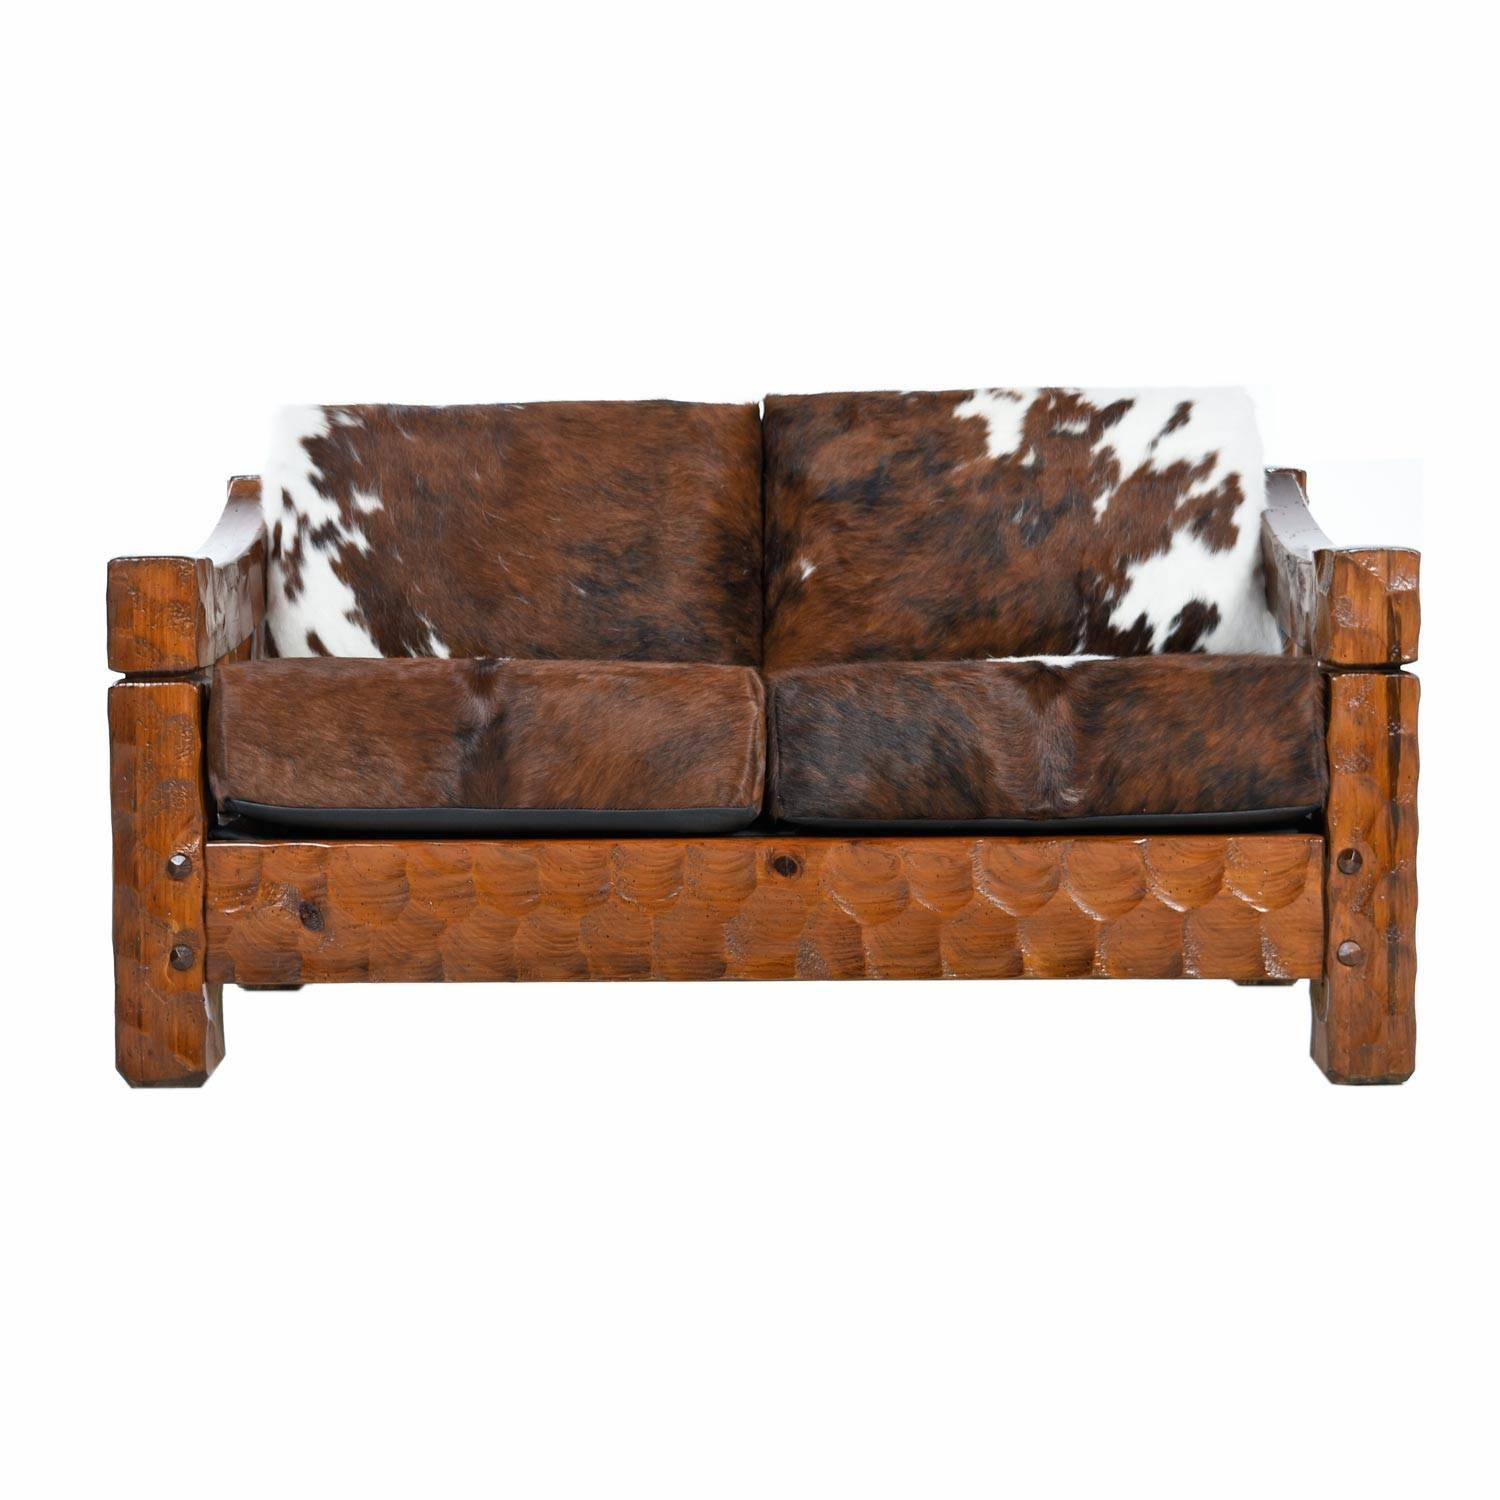 Rustic Modern Cowhide Leather Solid Pine Loveseat Sofa Settee By Null For  Sale